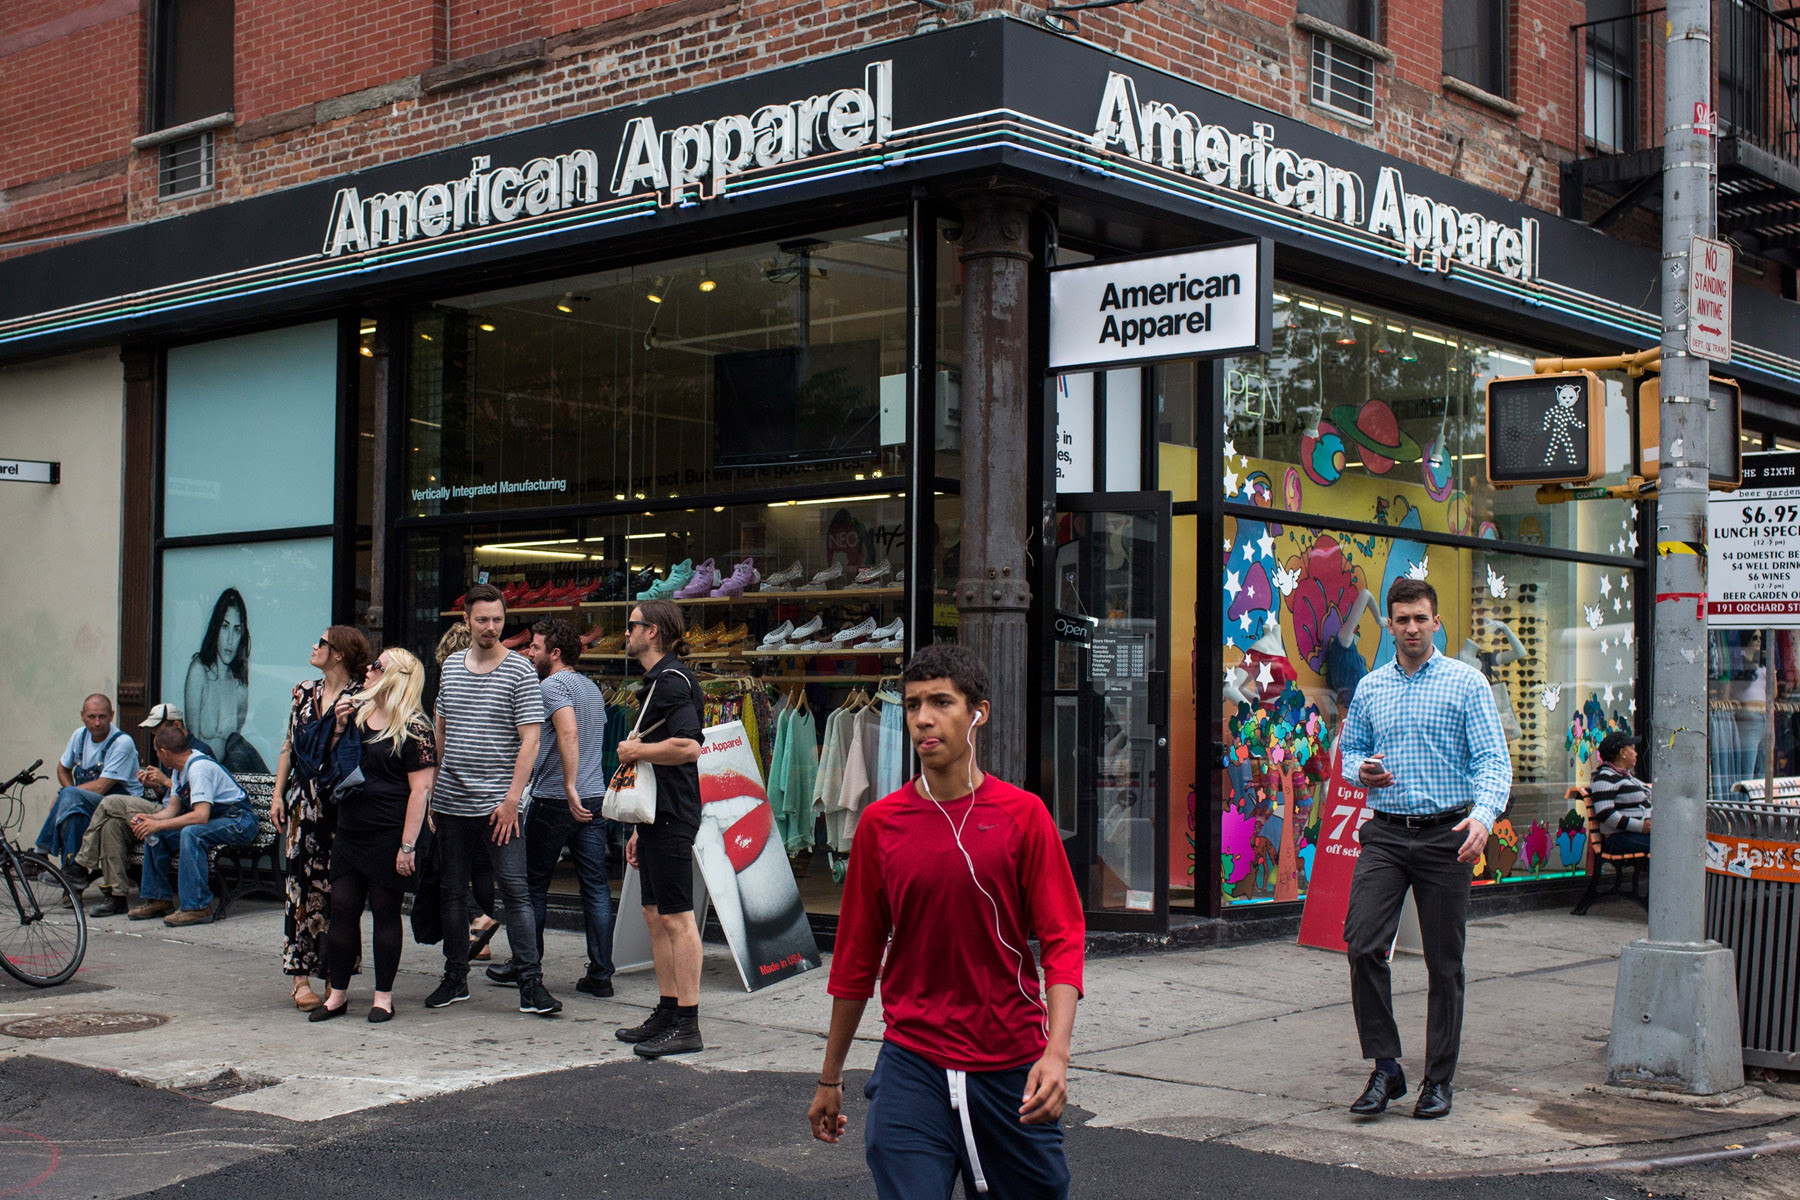 An American Apparel store.